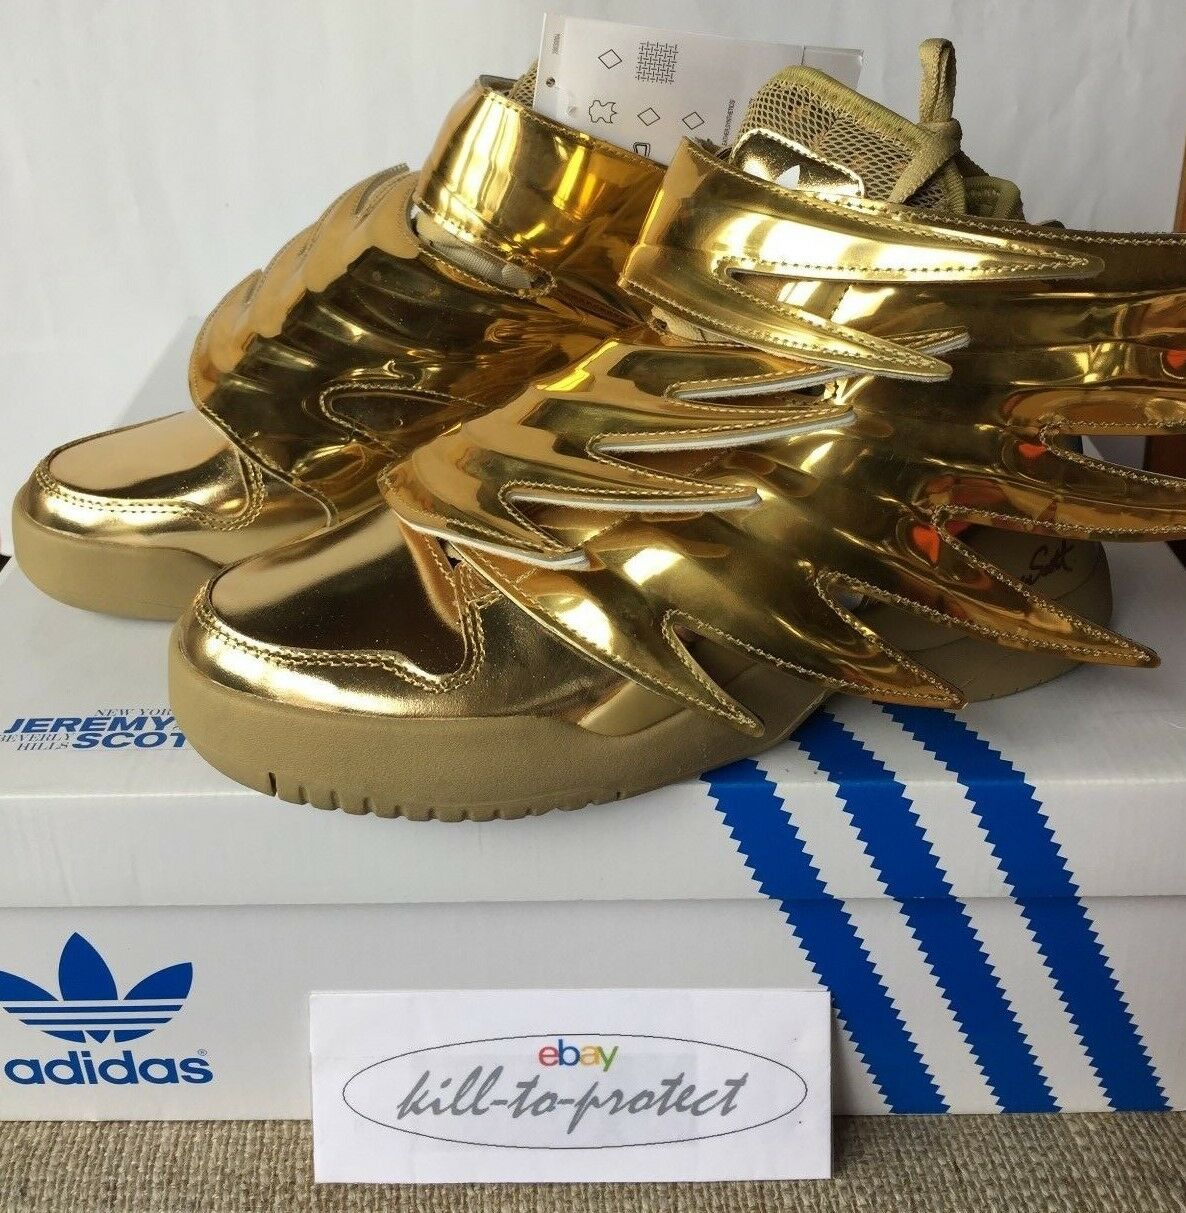 ADIDAS JEREMY SCOTT gold WINGS 3.0 Size US5.5 UK5 EU38 JS obyo B35651 2015